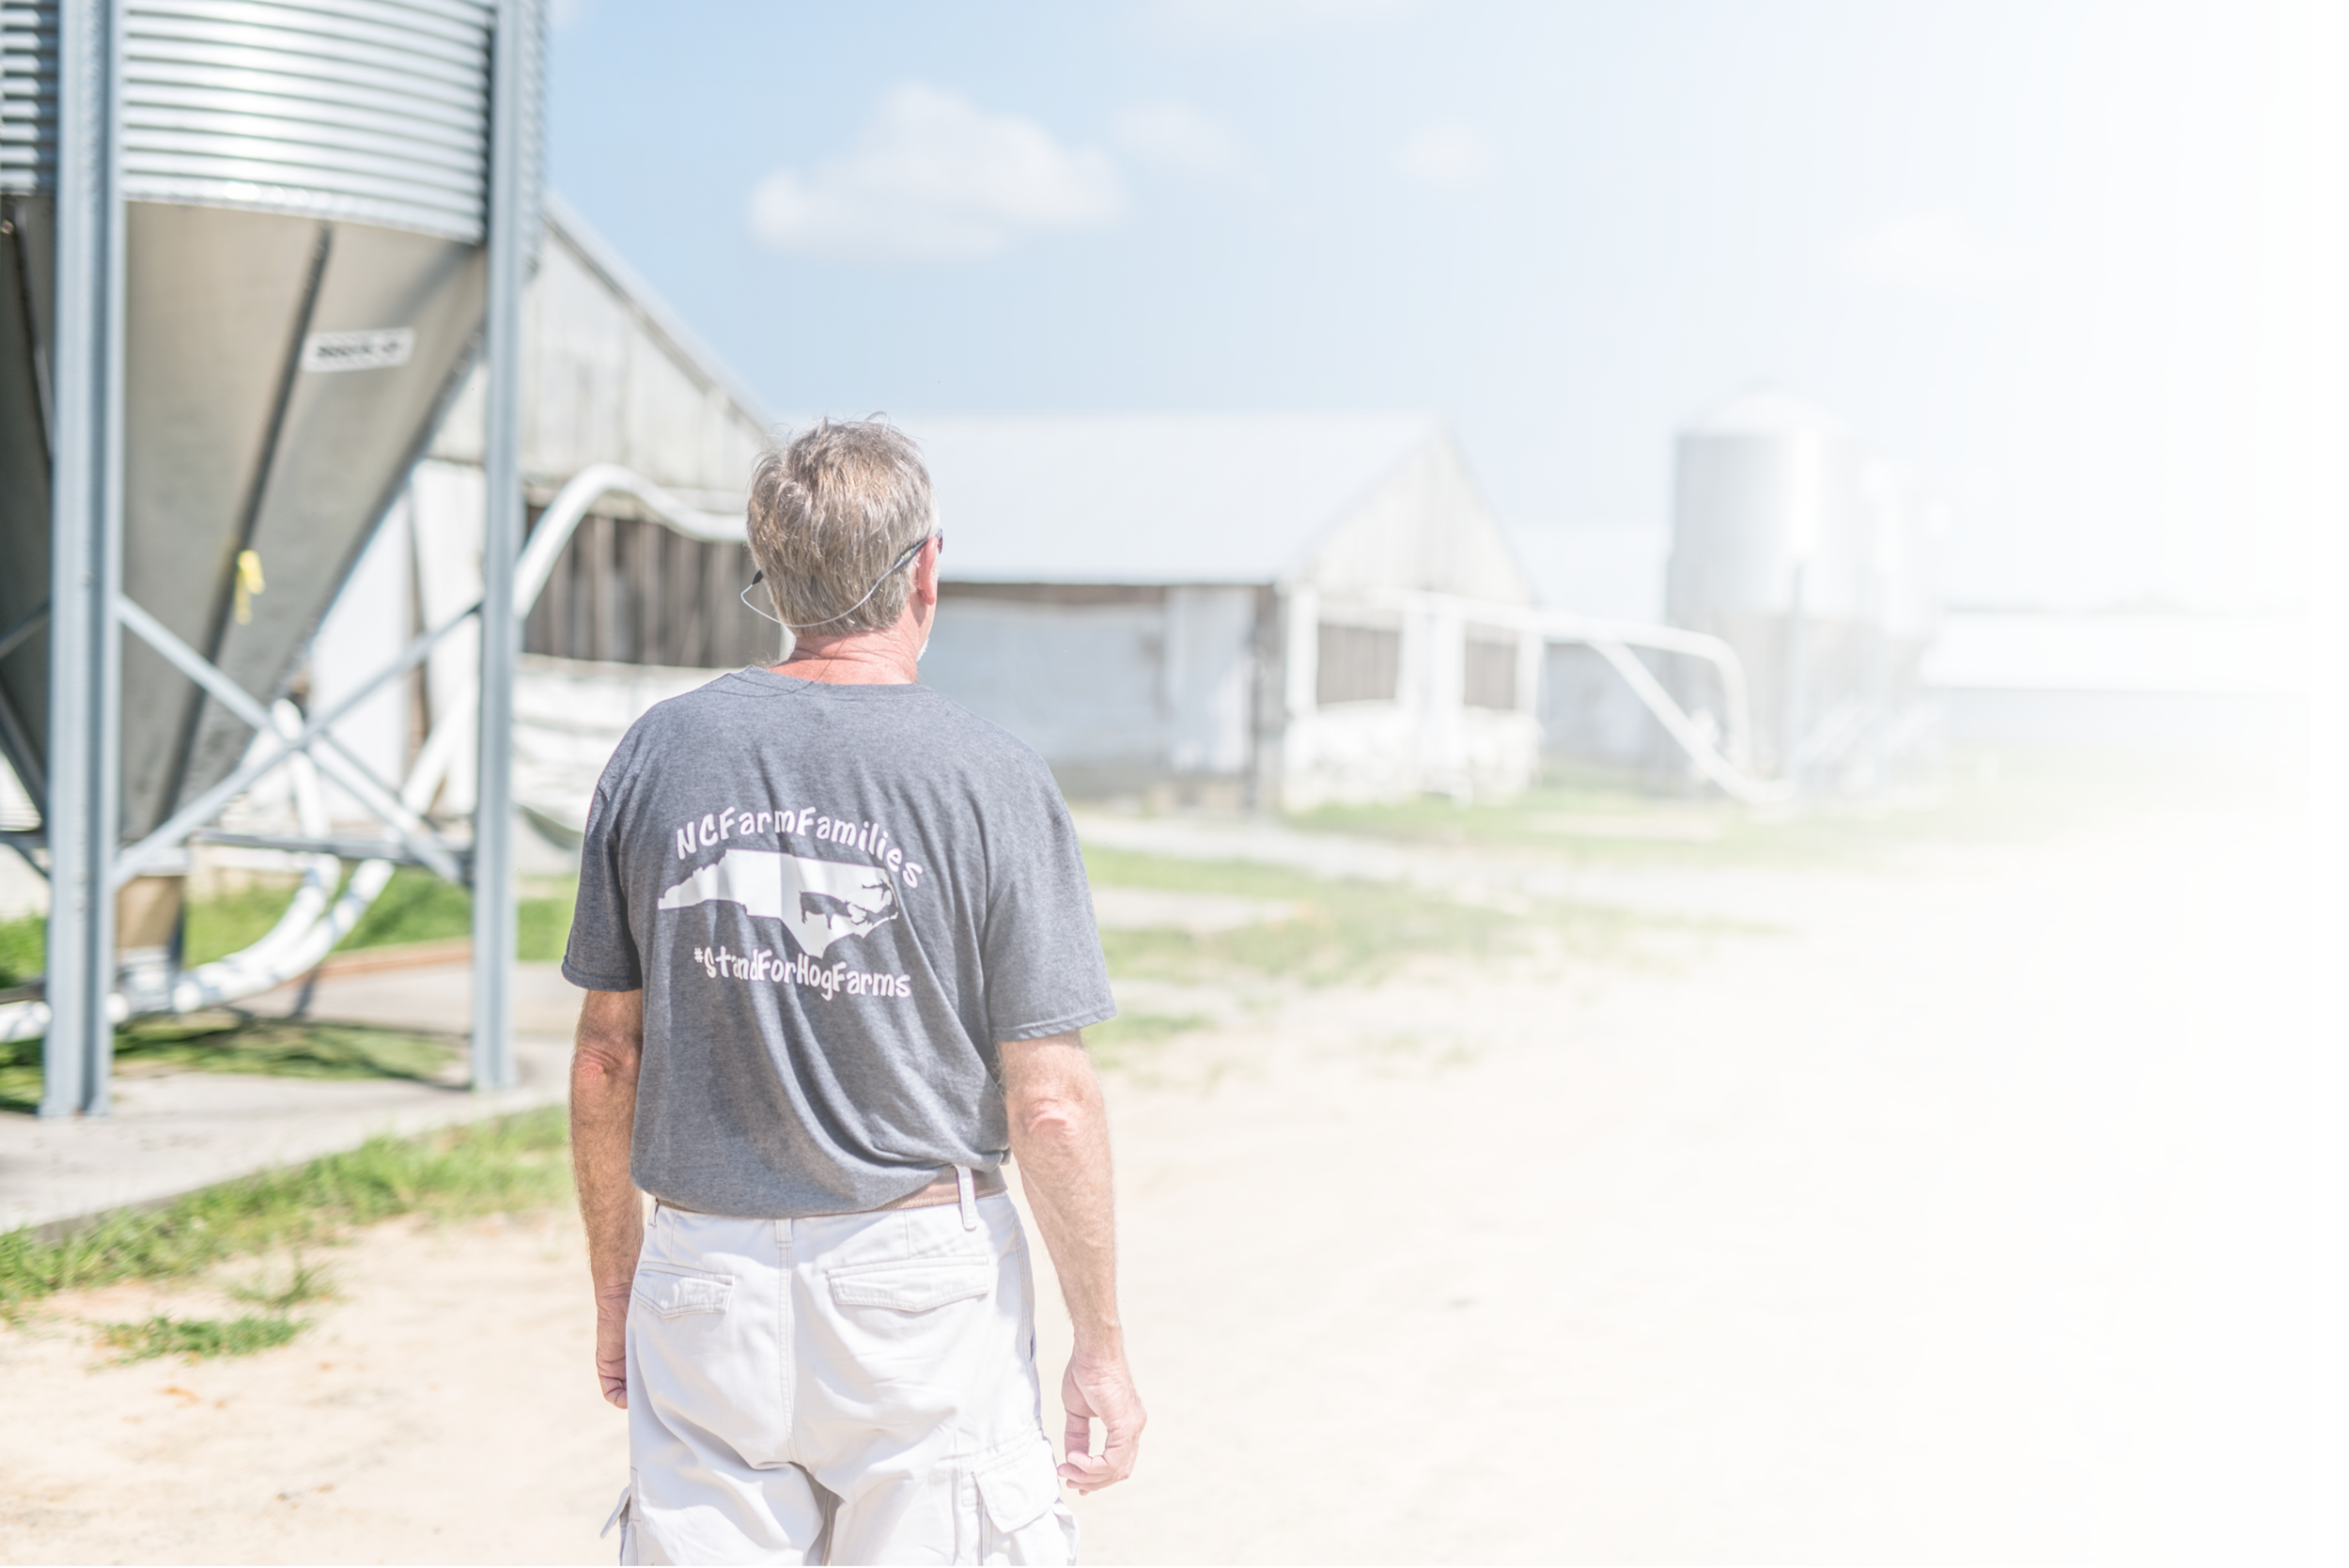 Under Attack - Lawsuits, baseless allegations, and activists are threatening family farmers in North Carolina.This not only impacts farmers, but the community at large. NC Farm Families is here to protect farmers and spread the truth.